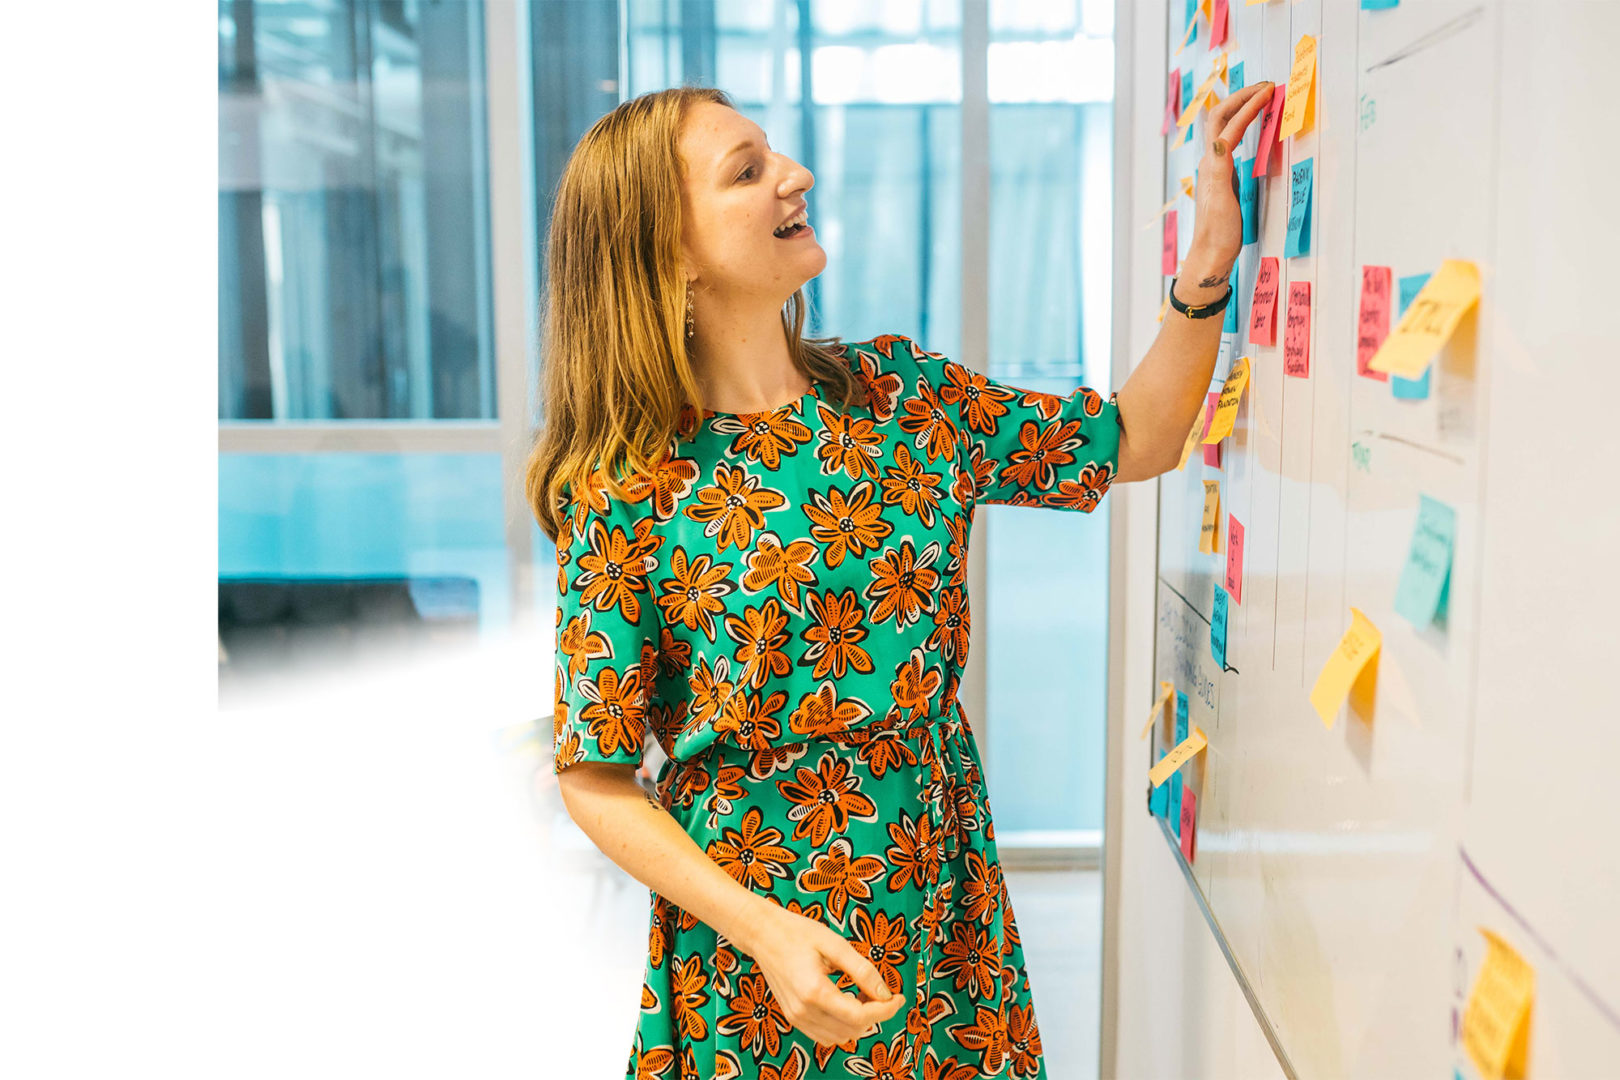 Alura from our team using the whiteboard